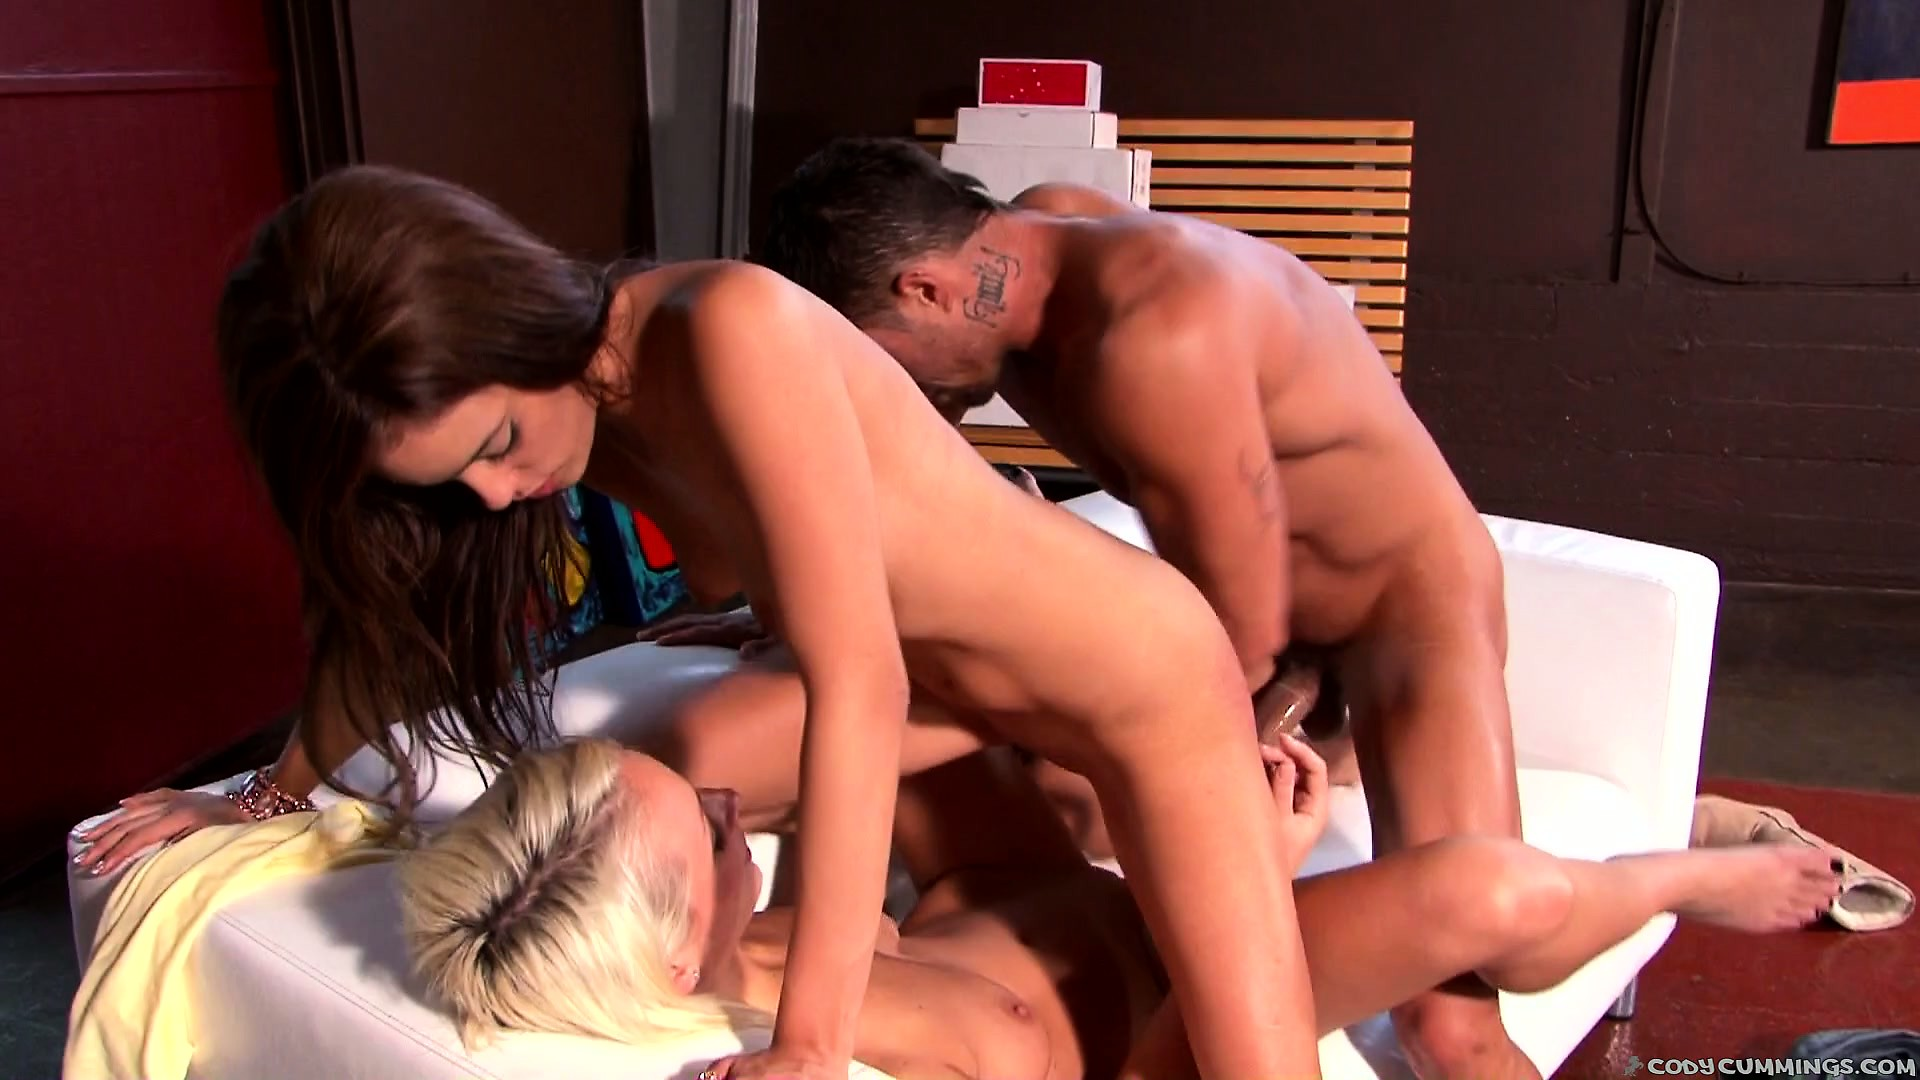 Porno Video of He Takes Turns Banging One Wet Pussy After The Other And Licks Ass